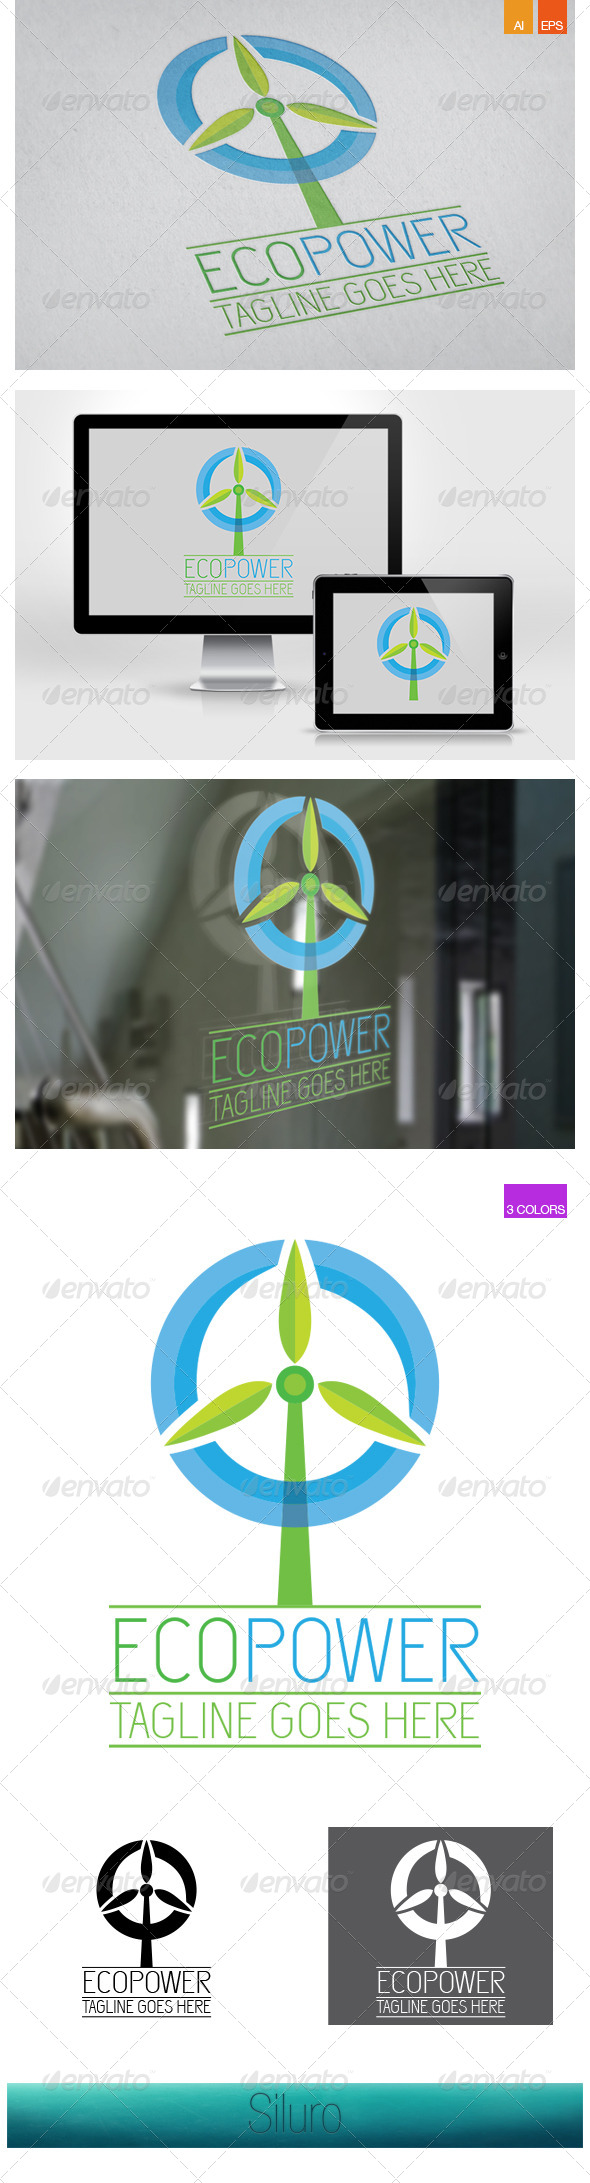 EcoPower - Nature Logo Templates